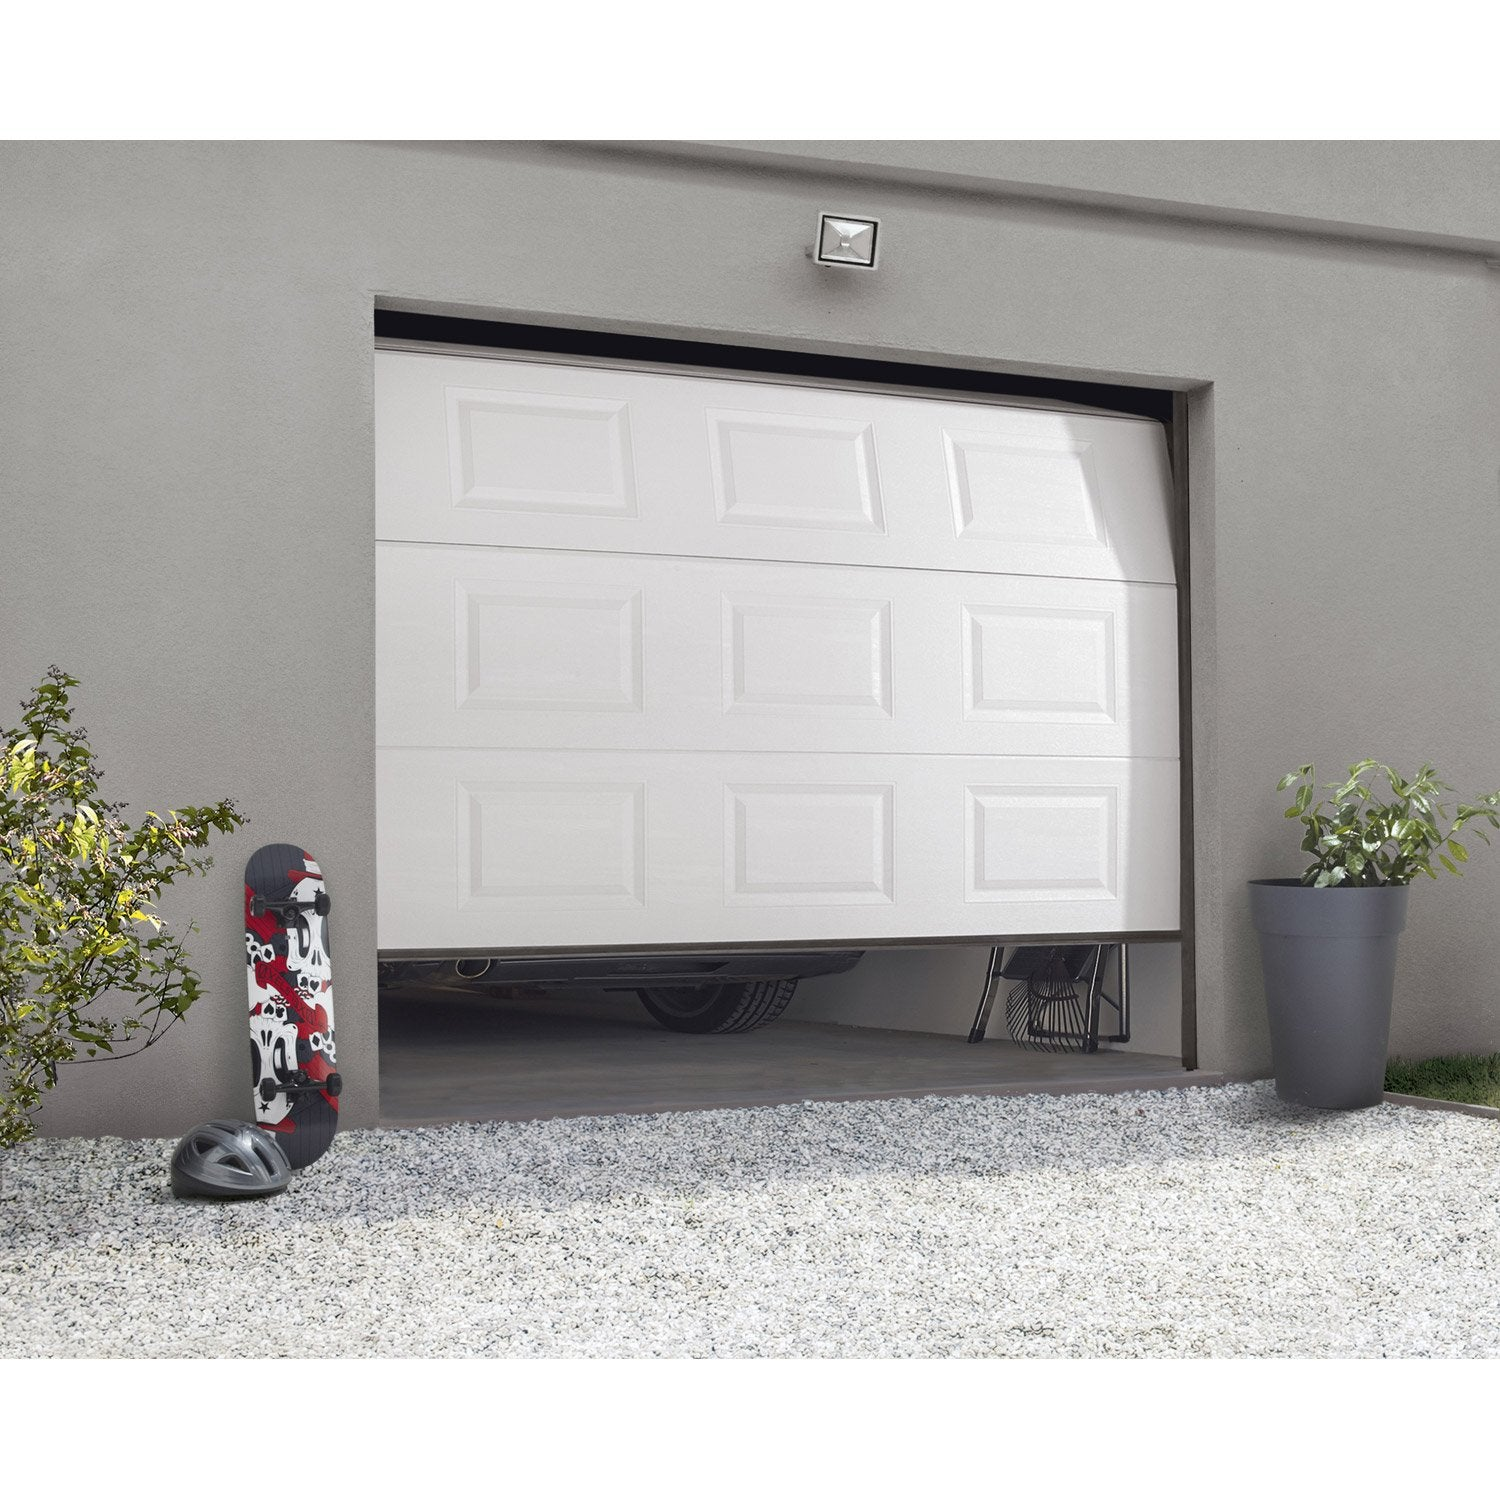 Porte de garage sectionnelle motoris e artens essentiel x cm leroy merlin - Porte de garage sectionnelle ...